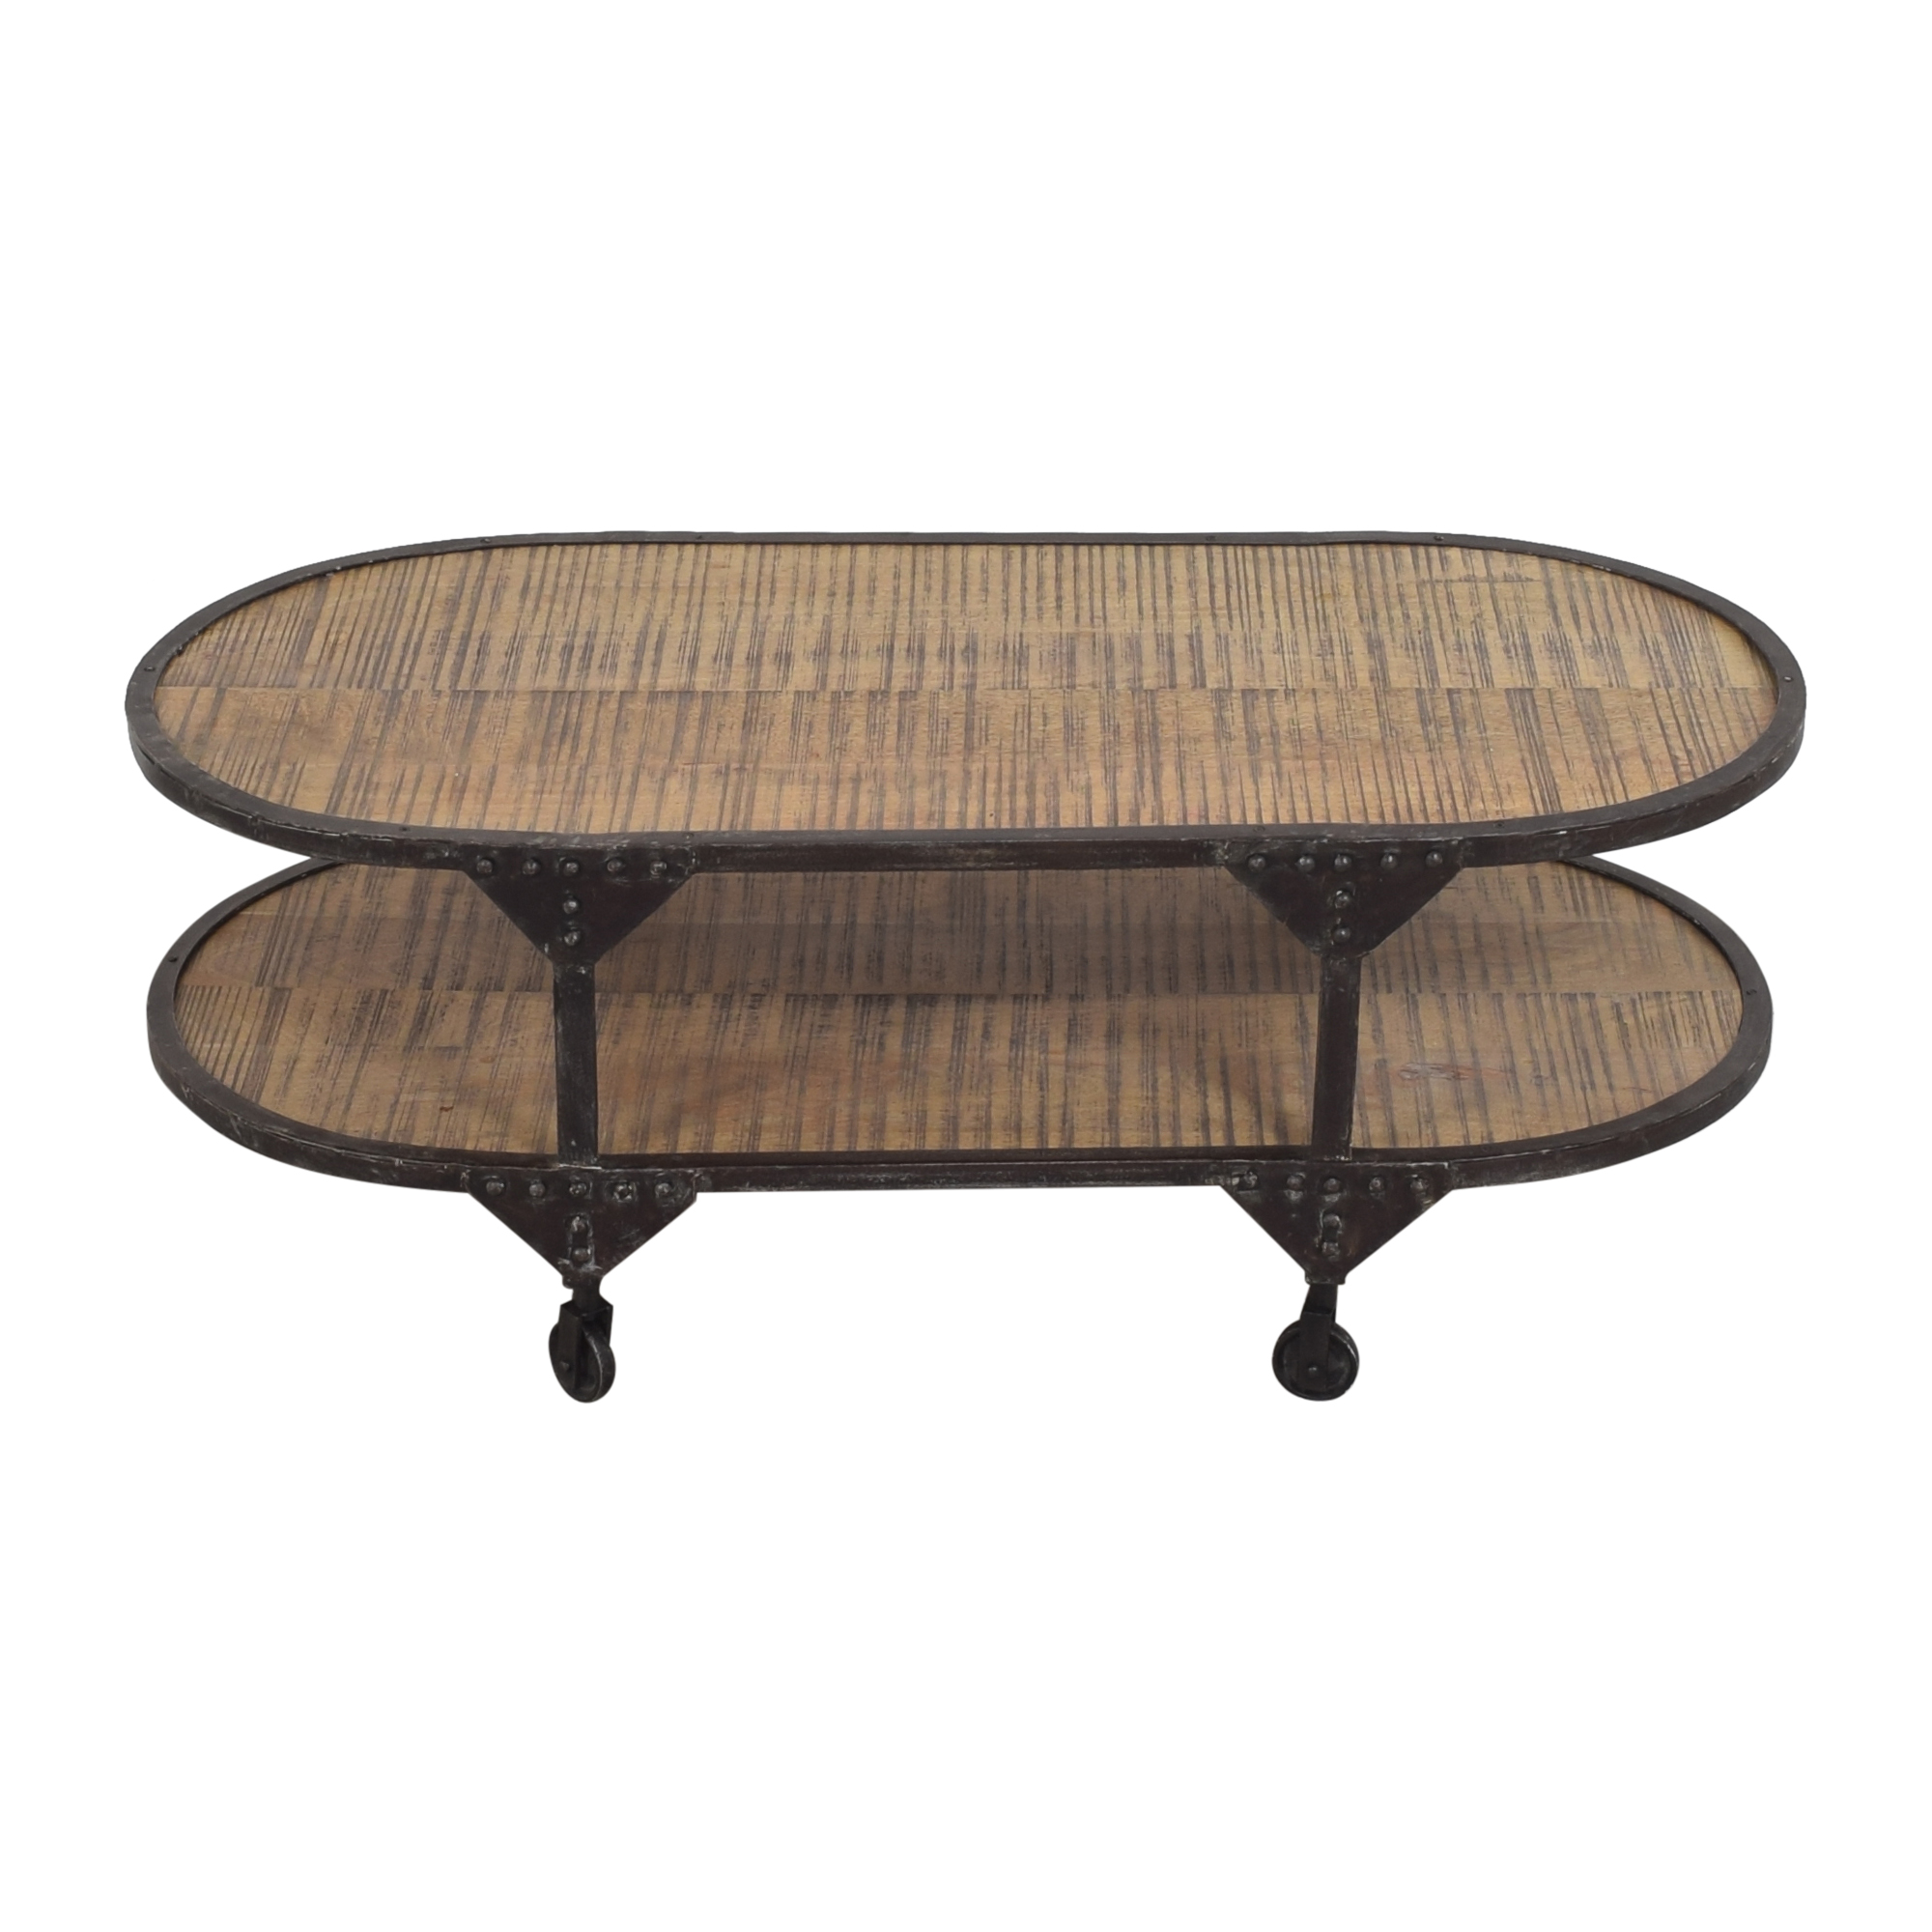 Two Tier Oval Coffee Table pa